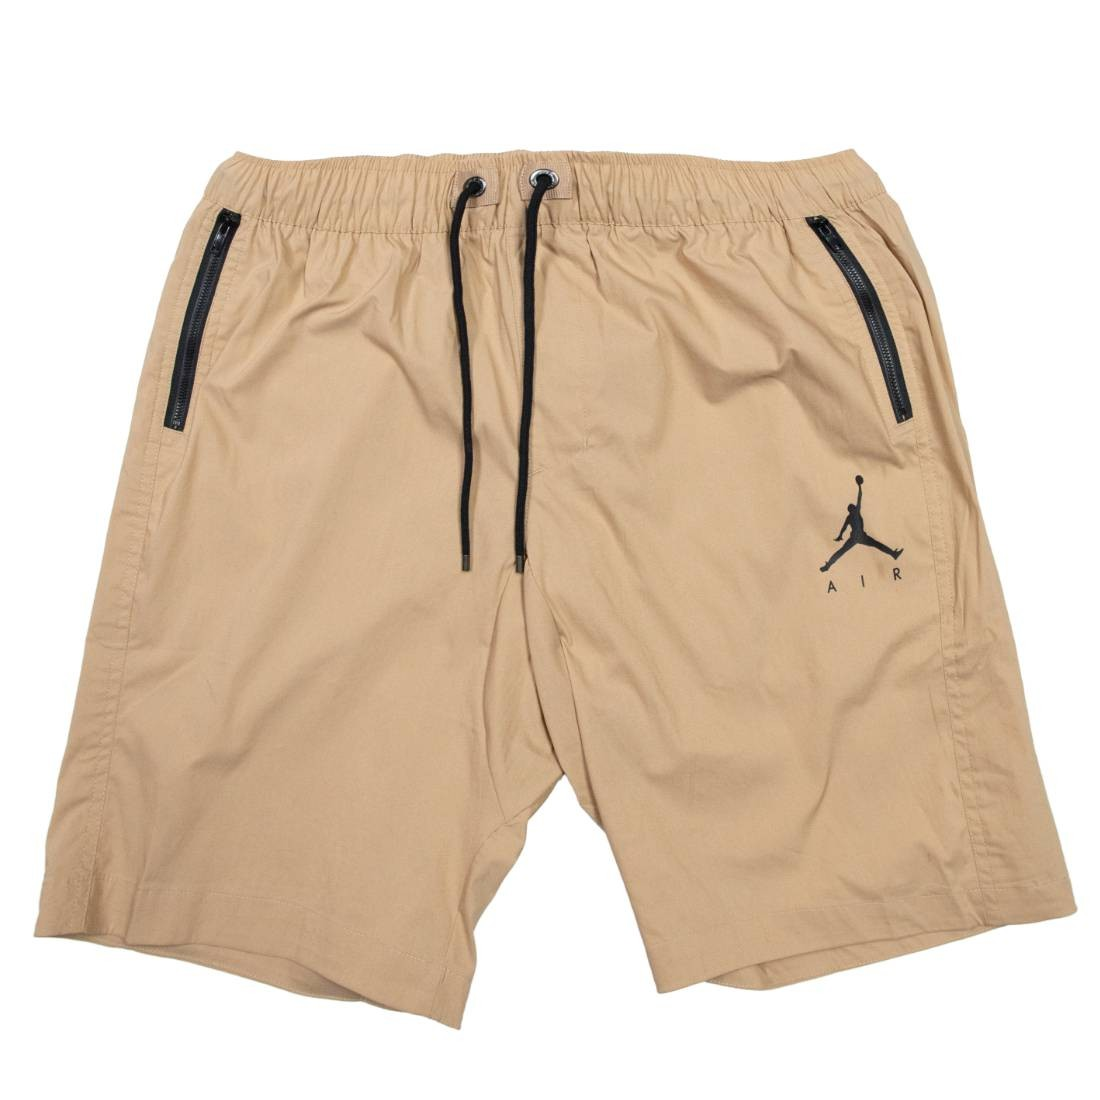 Jordan Men Jumpman Shorts (desert / black)